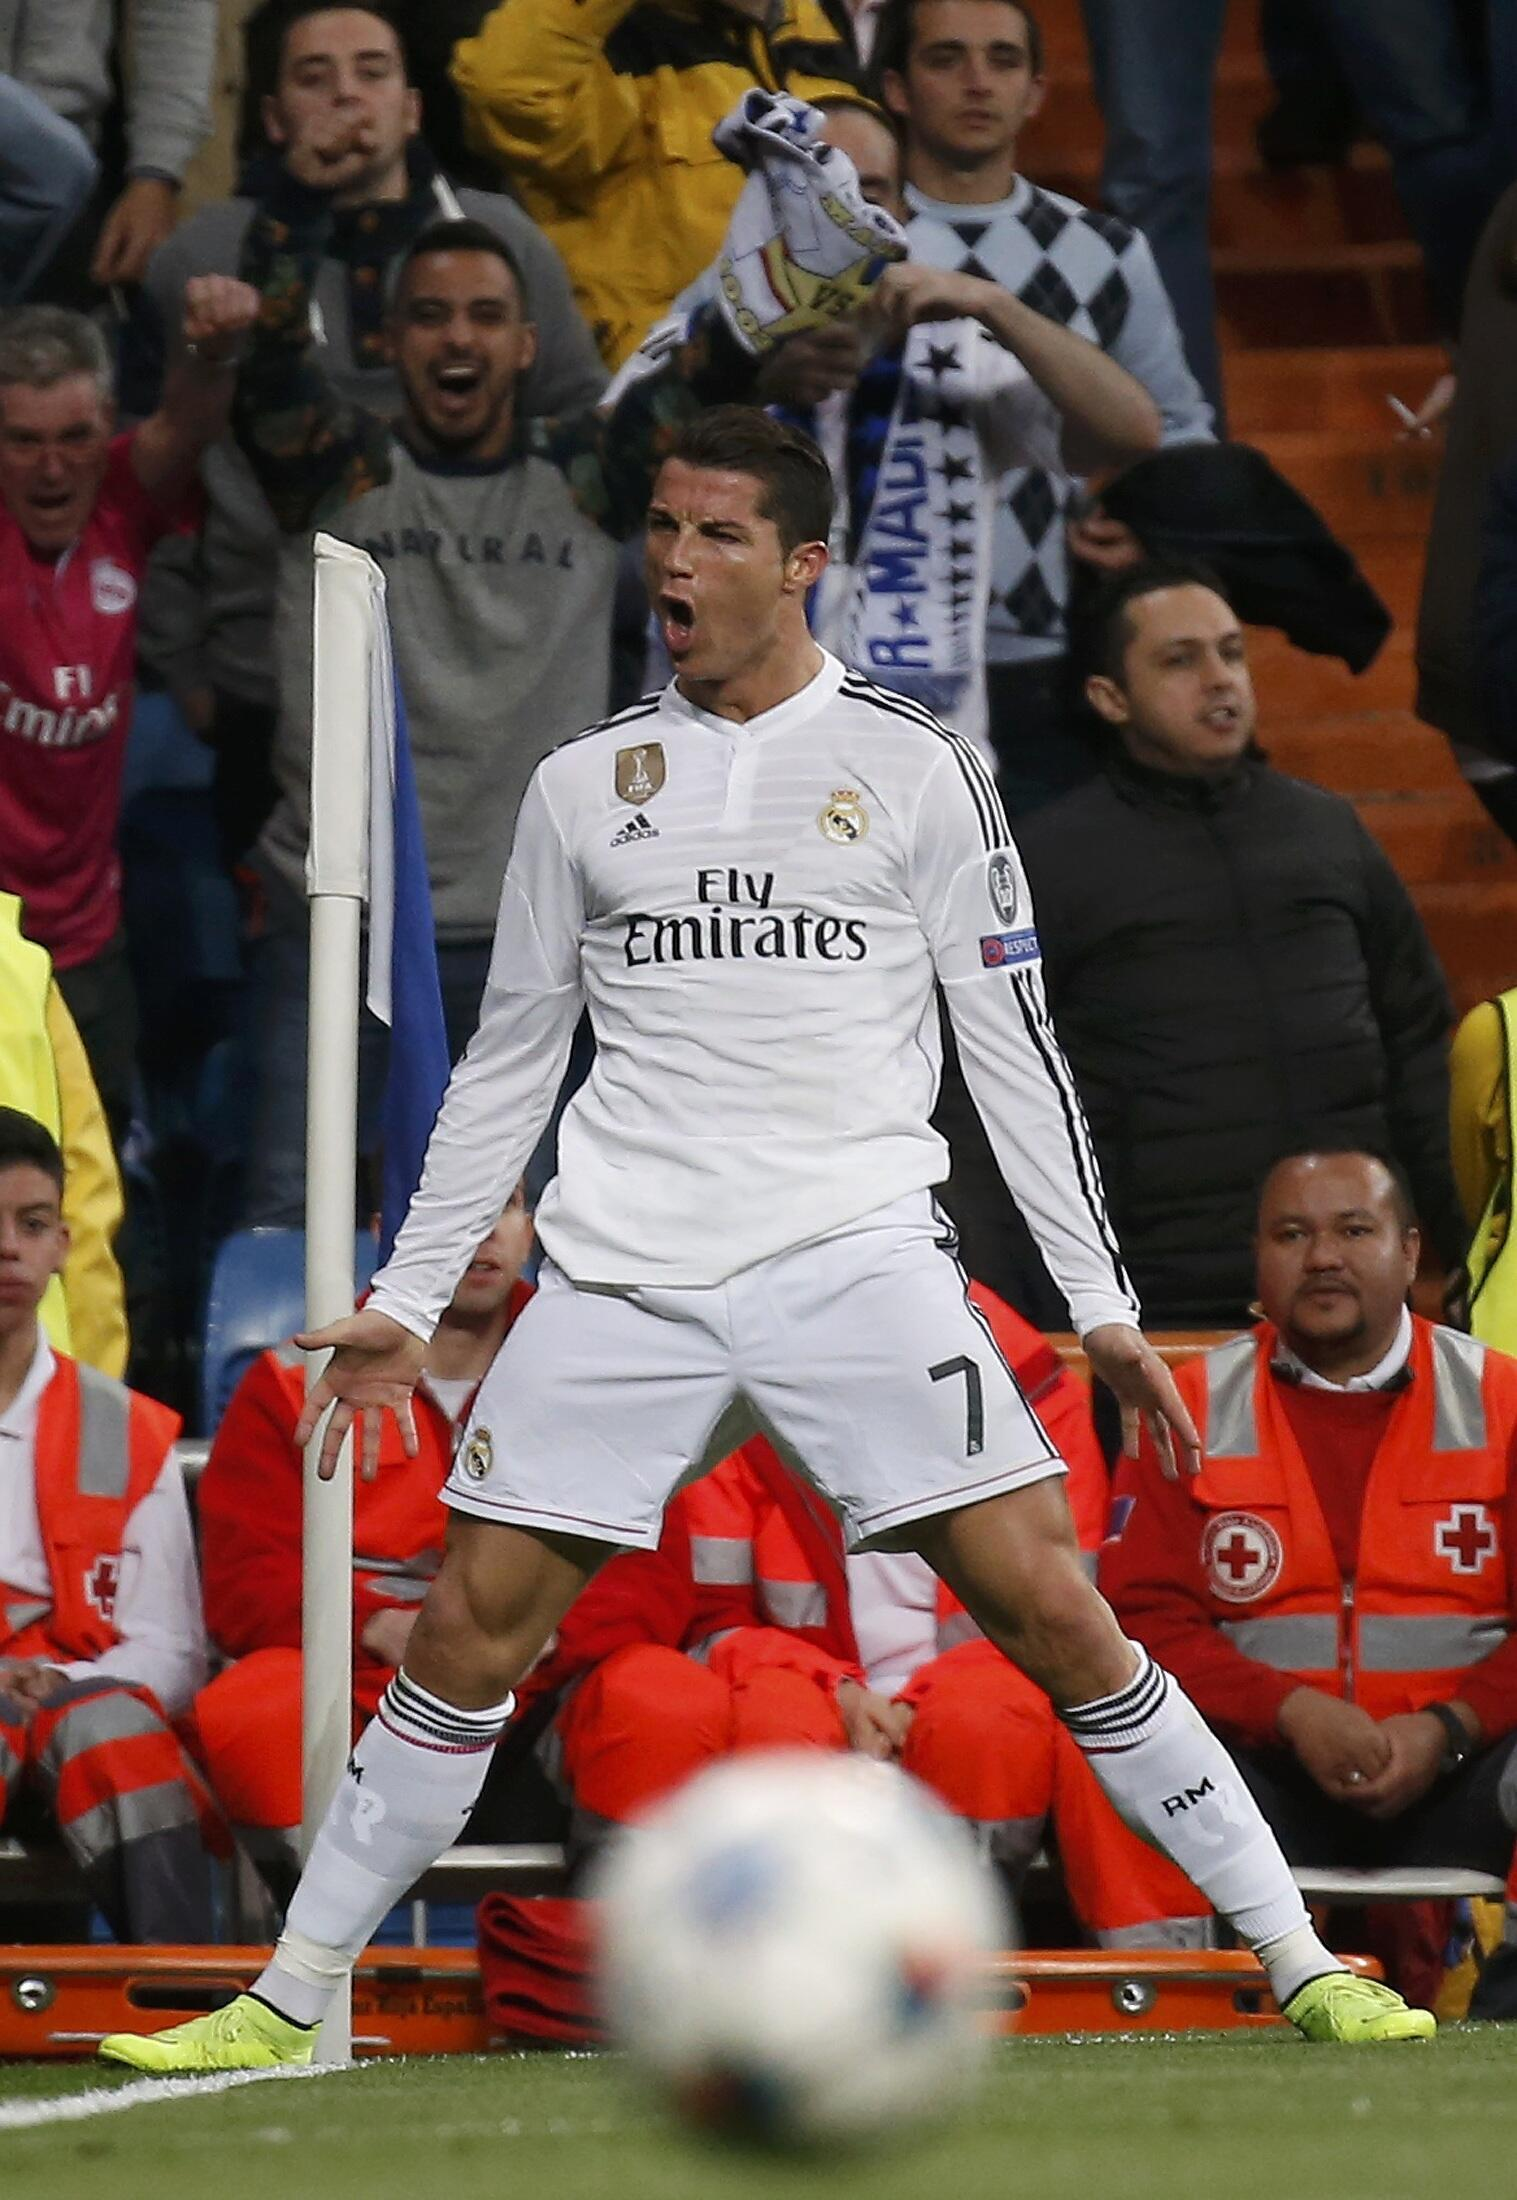 Cristiano Ronaldo warmed up for the Champions League clash against Juventus by scoring a hat trick on Saturday night against Sevilla in La Liga.